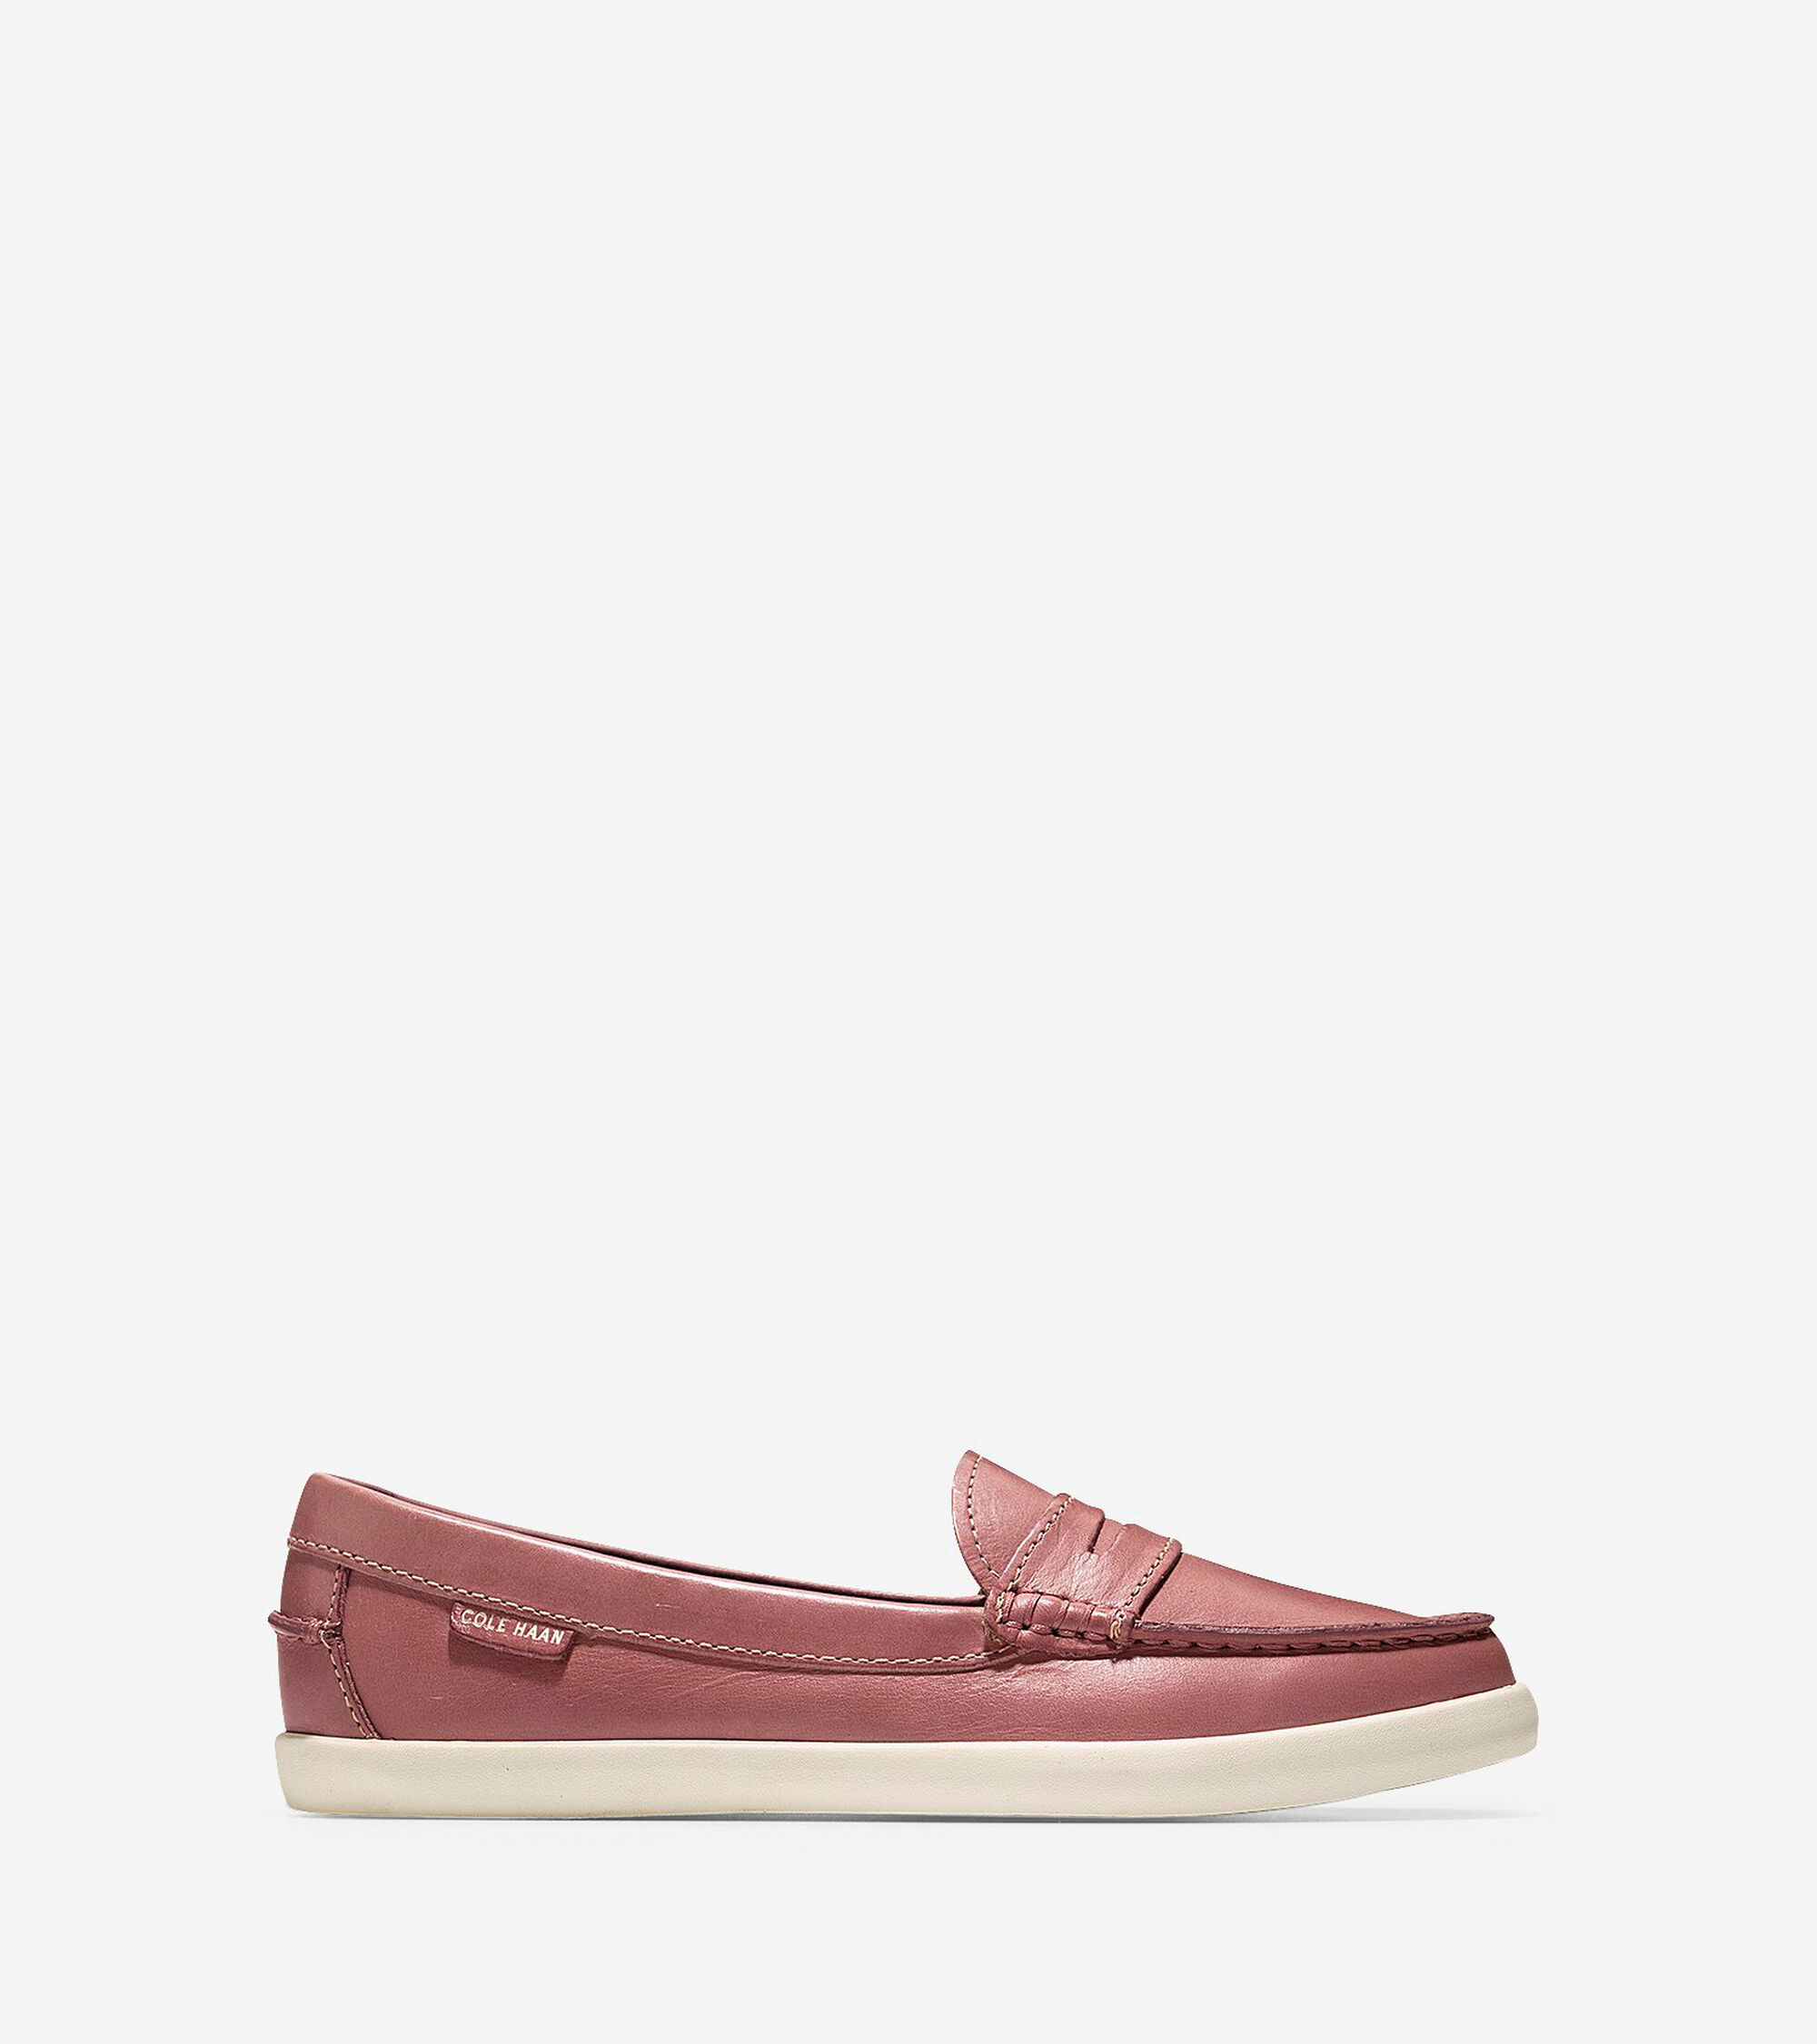 24c95b67c10 Cole Haan Women s Nantucket Loafer in Mesa Rose   ColeHaan.com